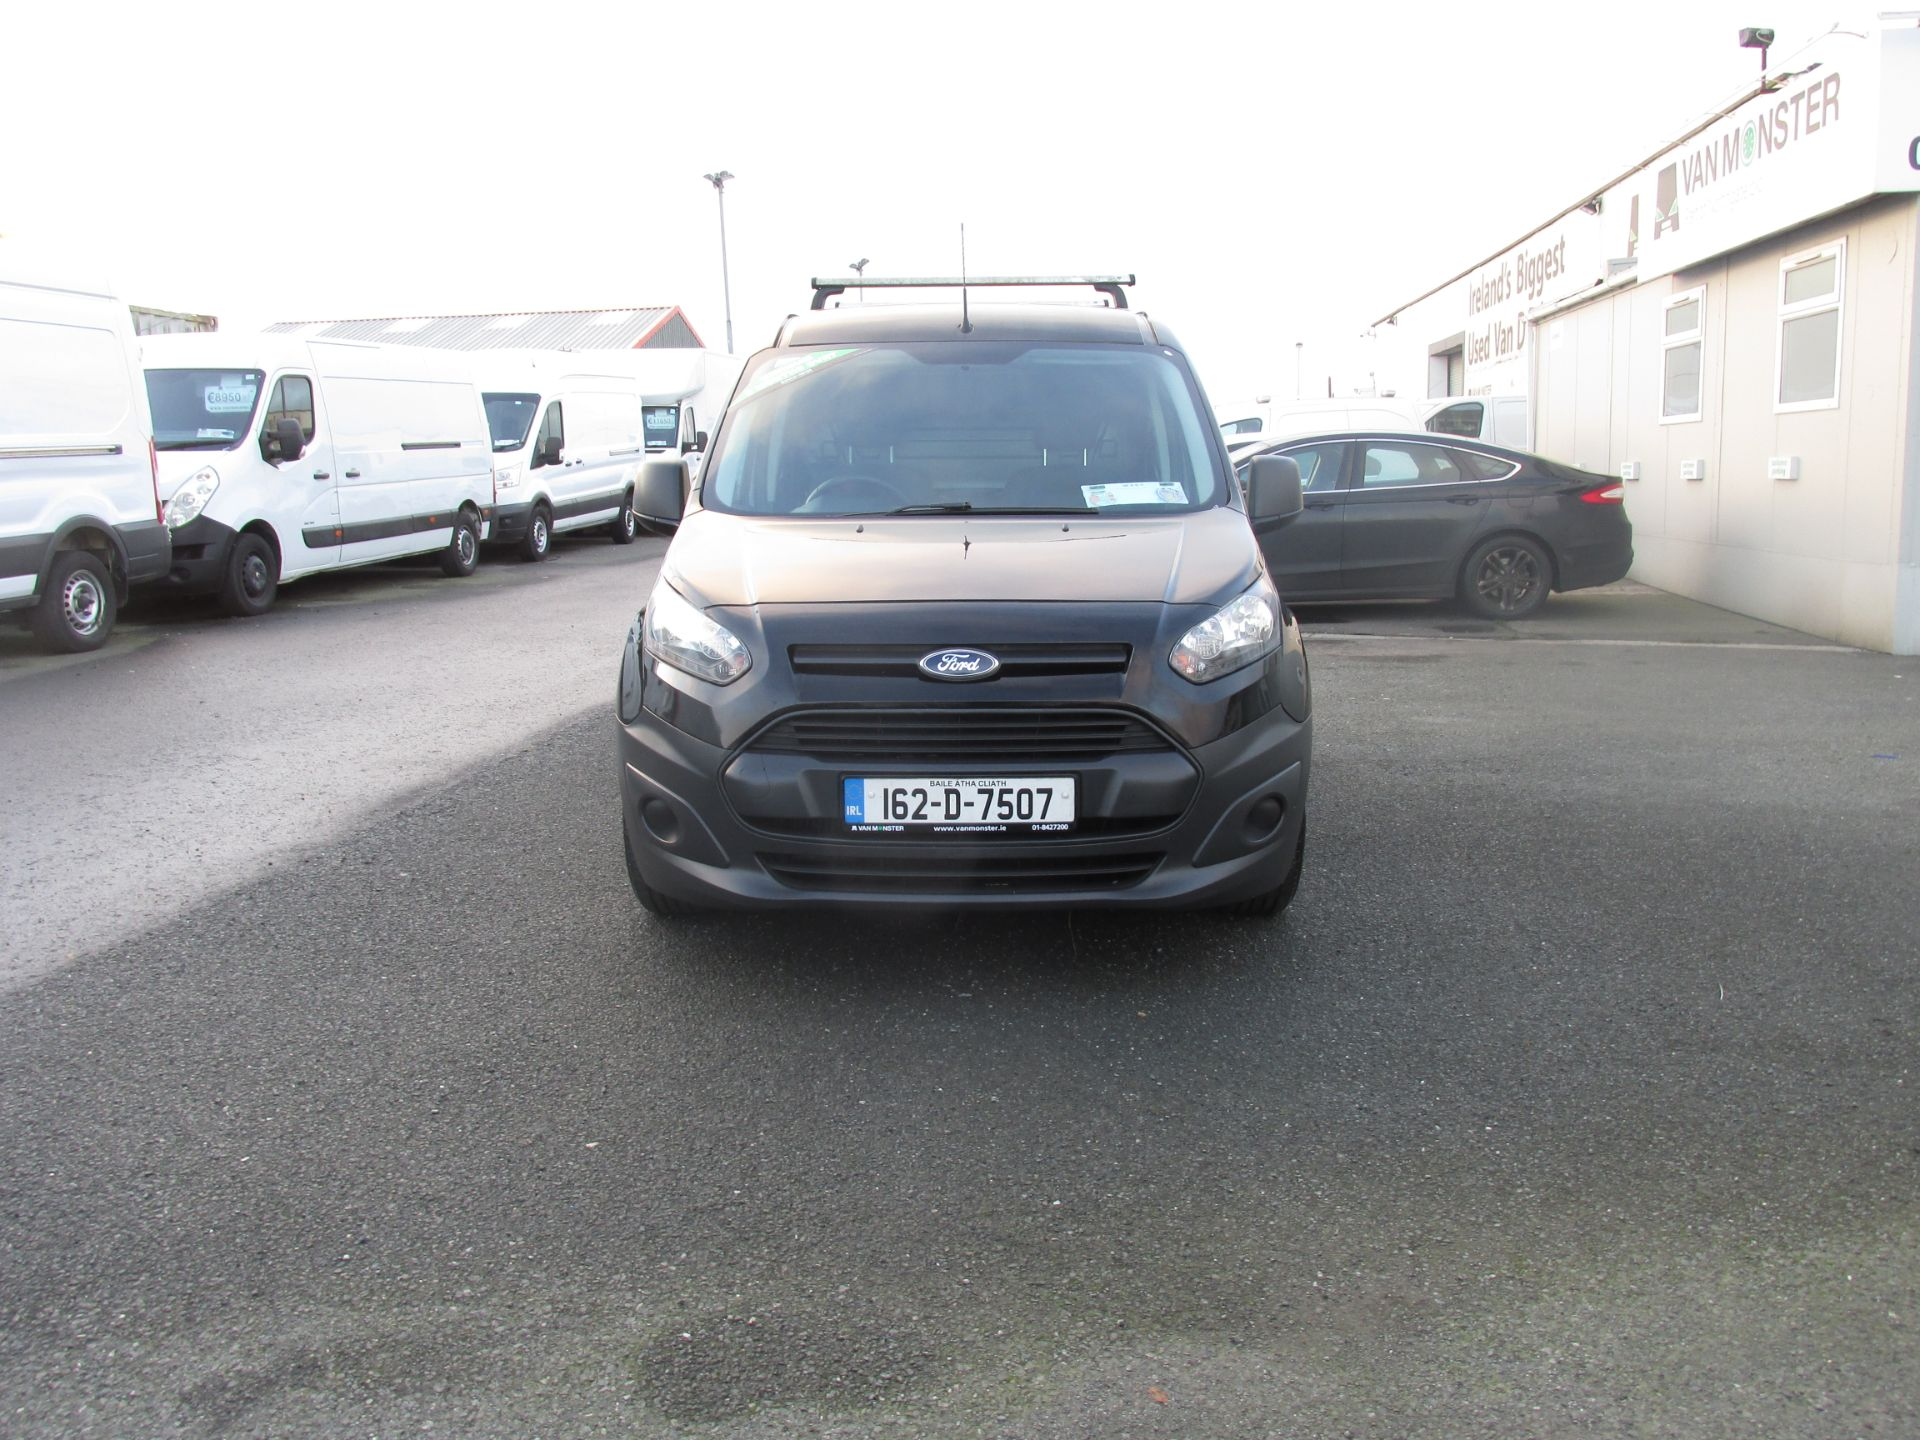 2016 Ford Transit T Connect SWB 1.5TD 75PS 5SPD - DEAL OF THE WEEK - R/RACK - PLY LINED -BLACK (162D7507) Image 8